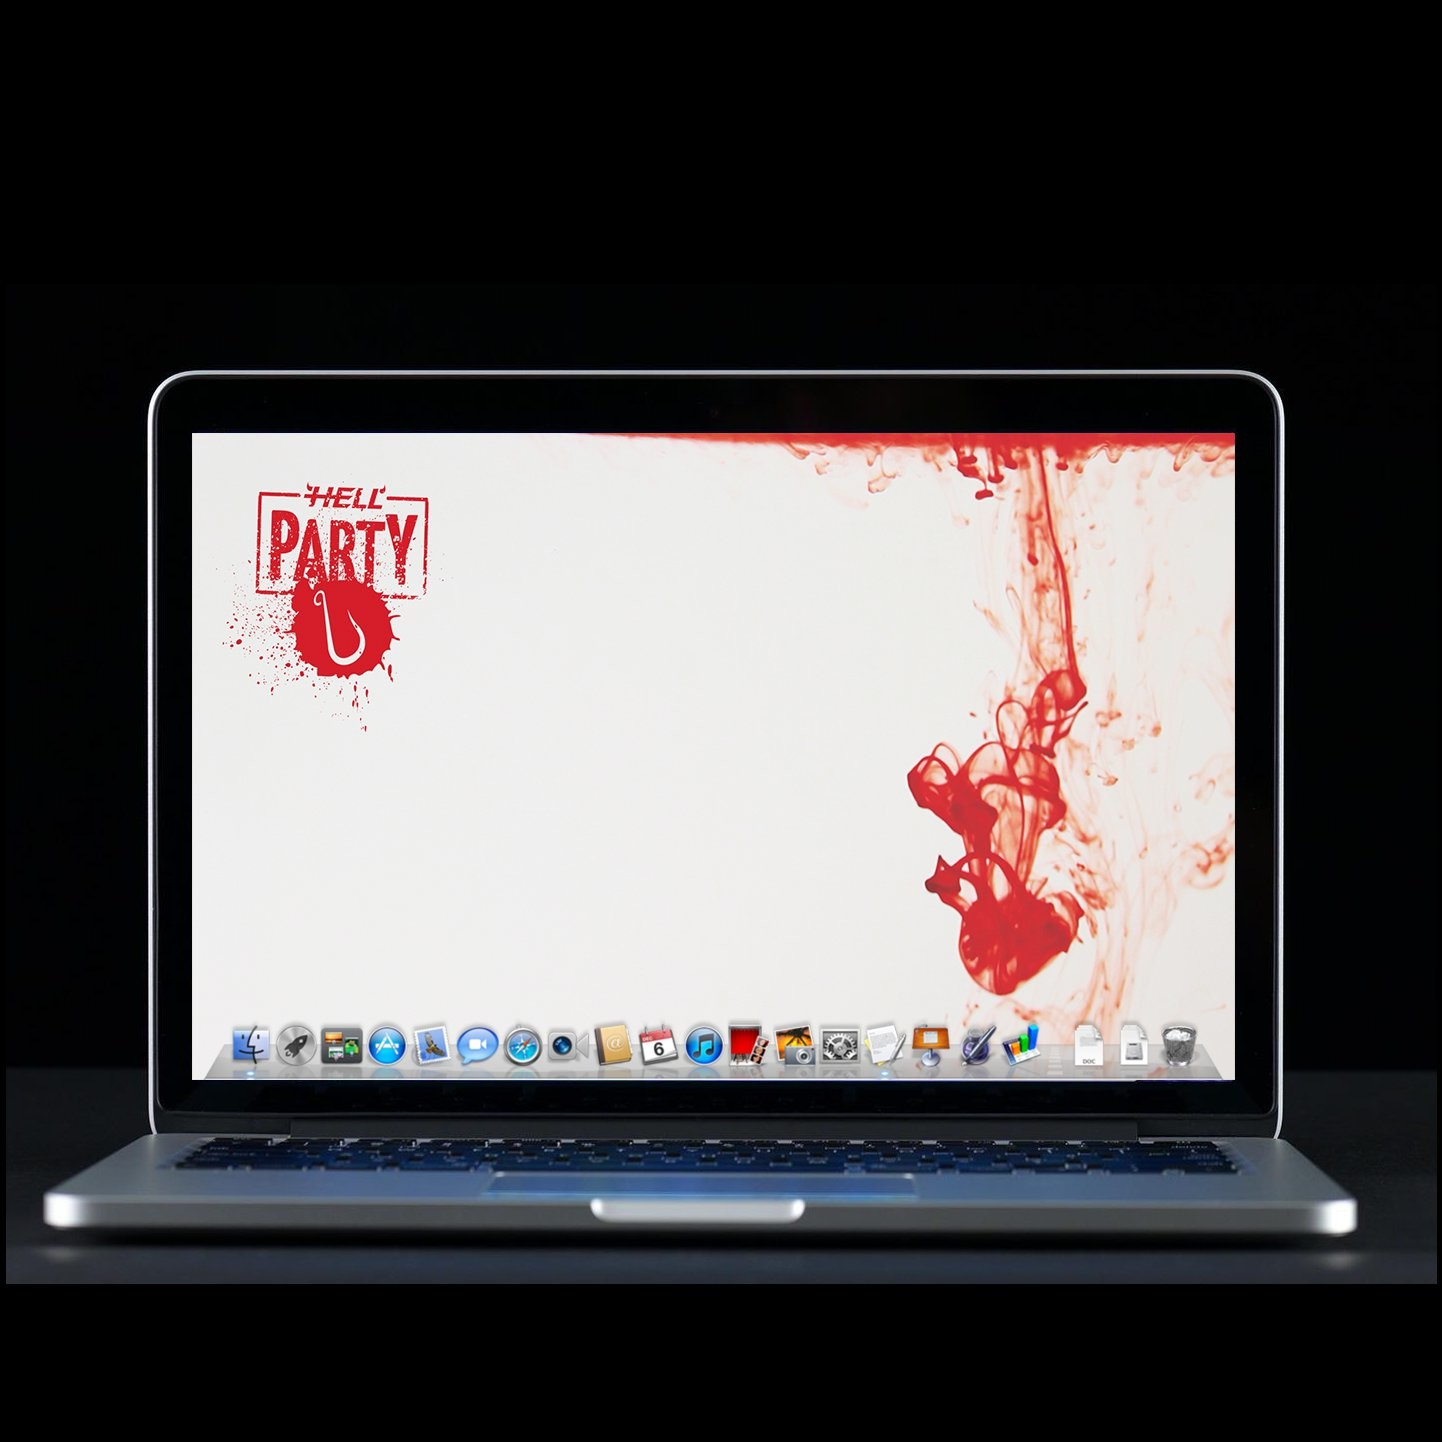 Hell_Party_wallpaper_Mac_1_1x1